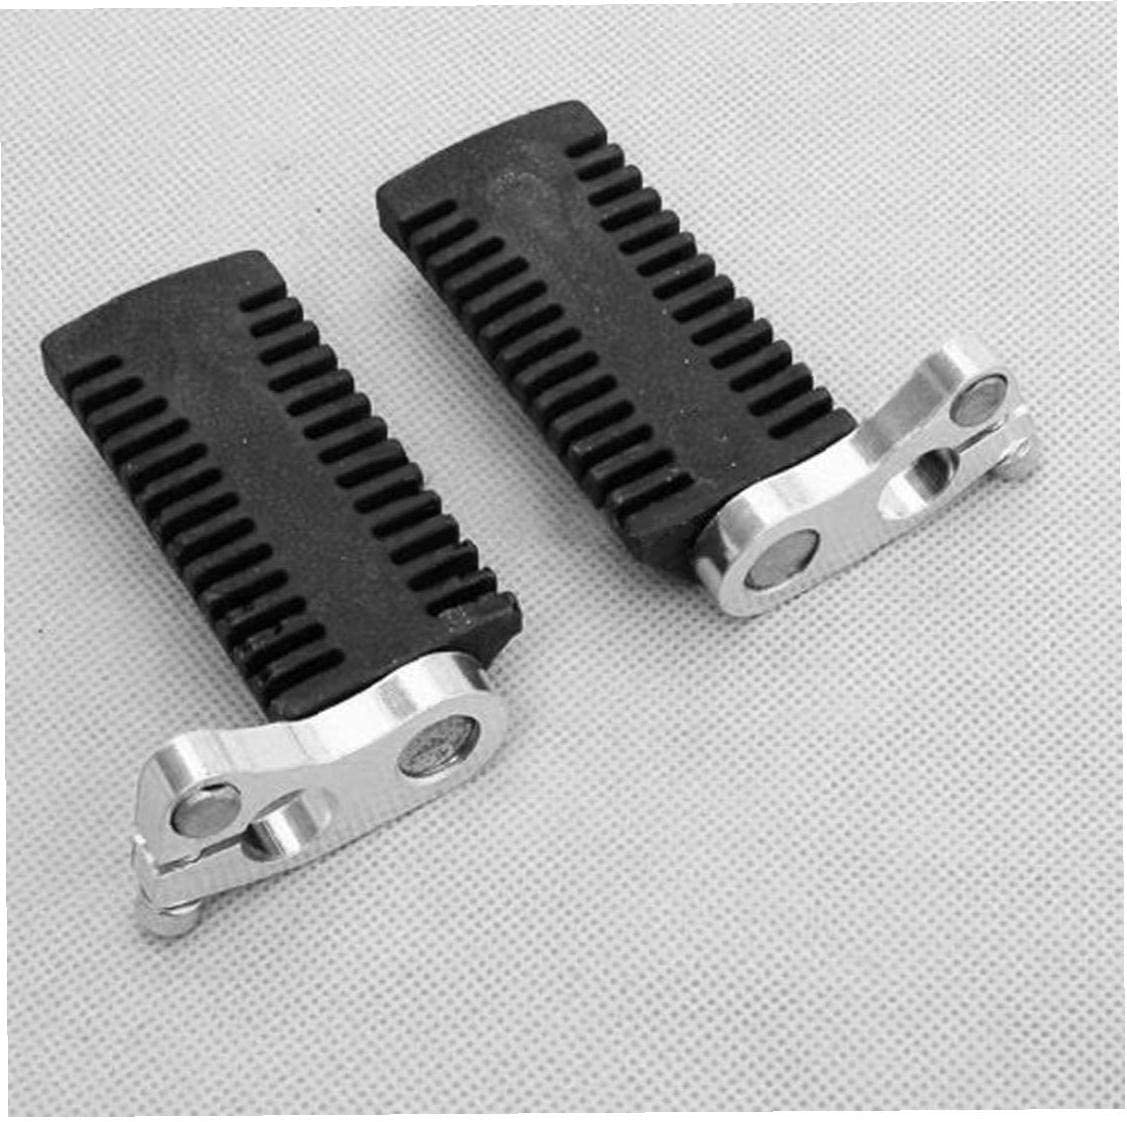 2pcs Motorcycle Pedals Foot Rest Footpegs for 47cc 49cc Mini Moto Pocket Bike